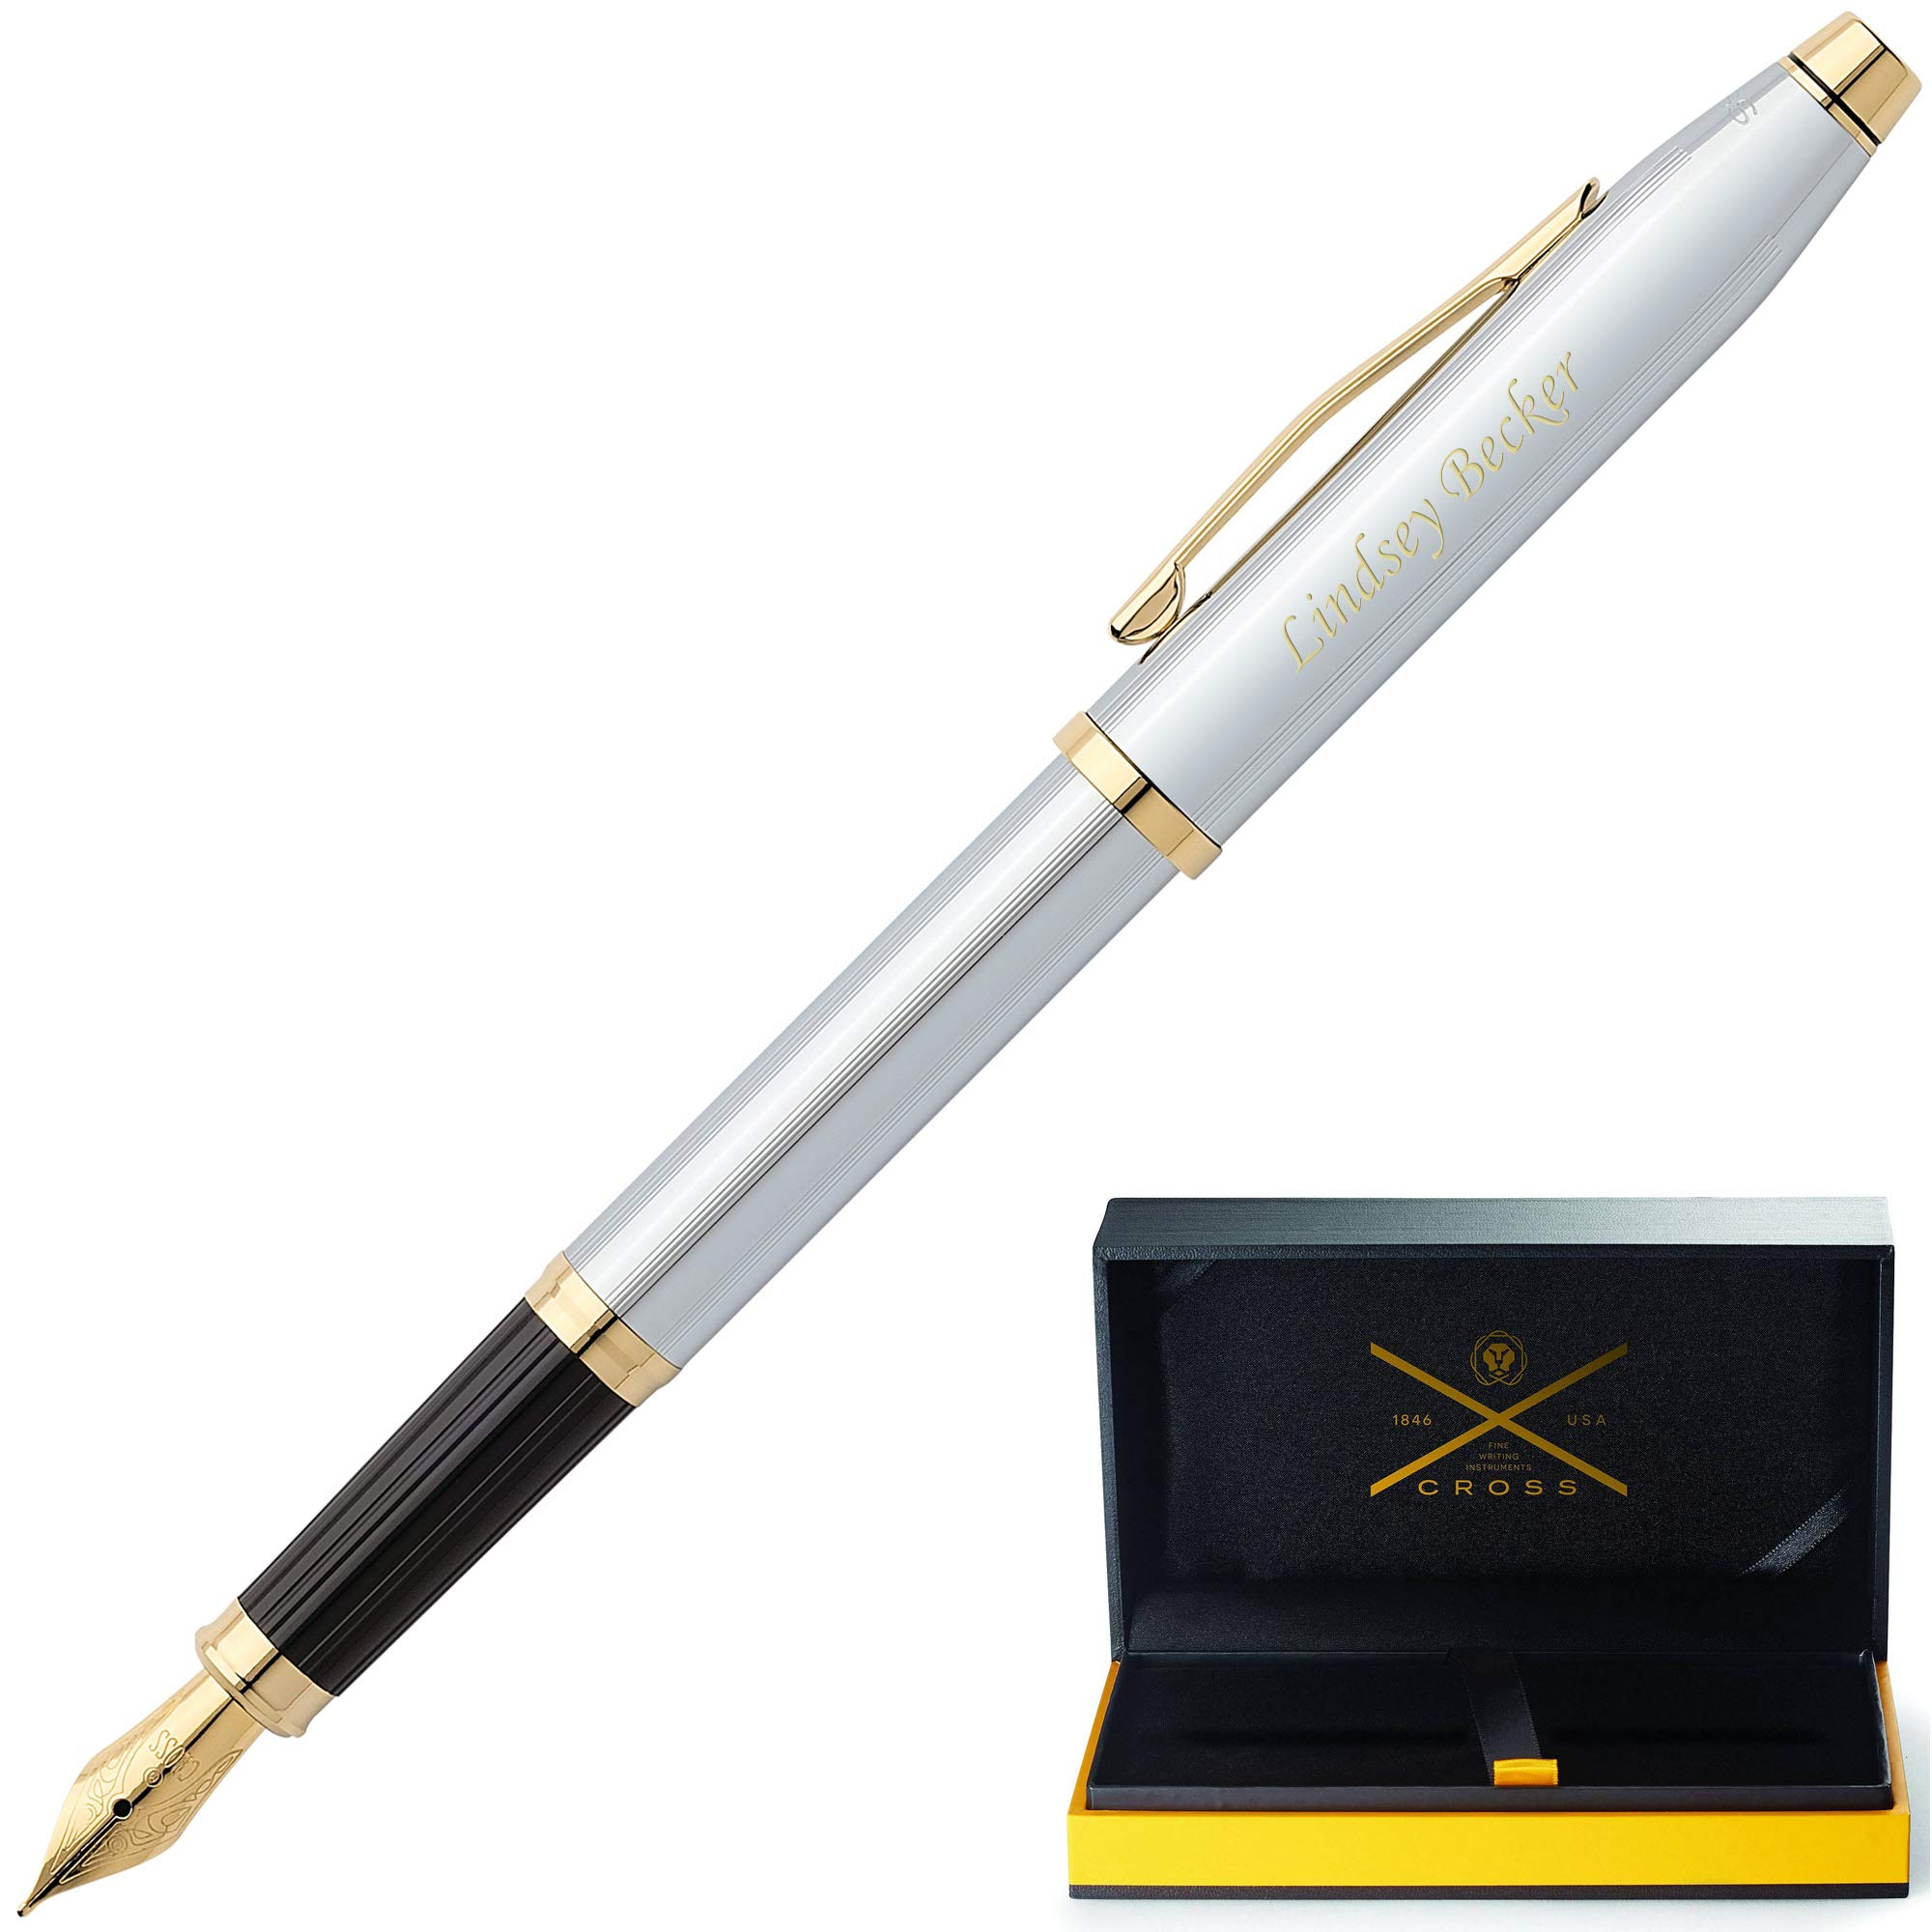 Cross Pen   Personalized/Engraved Cross Century II Medalist Fountain Pen 3309-MS. Custom Engraving Included! Comes in Cross Gift Box.